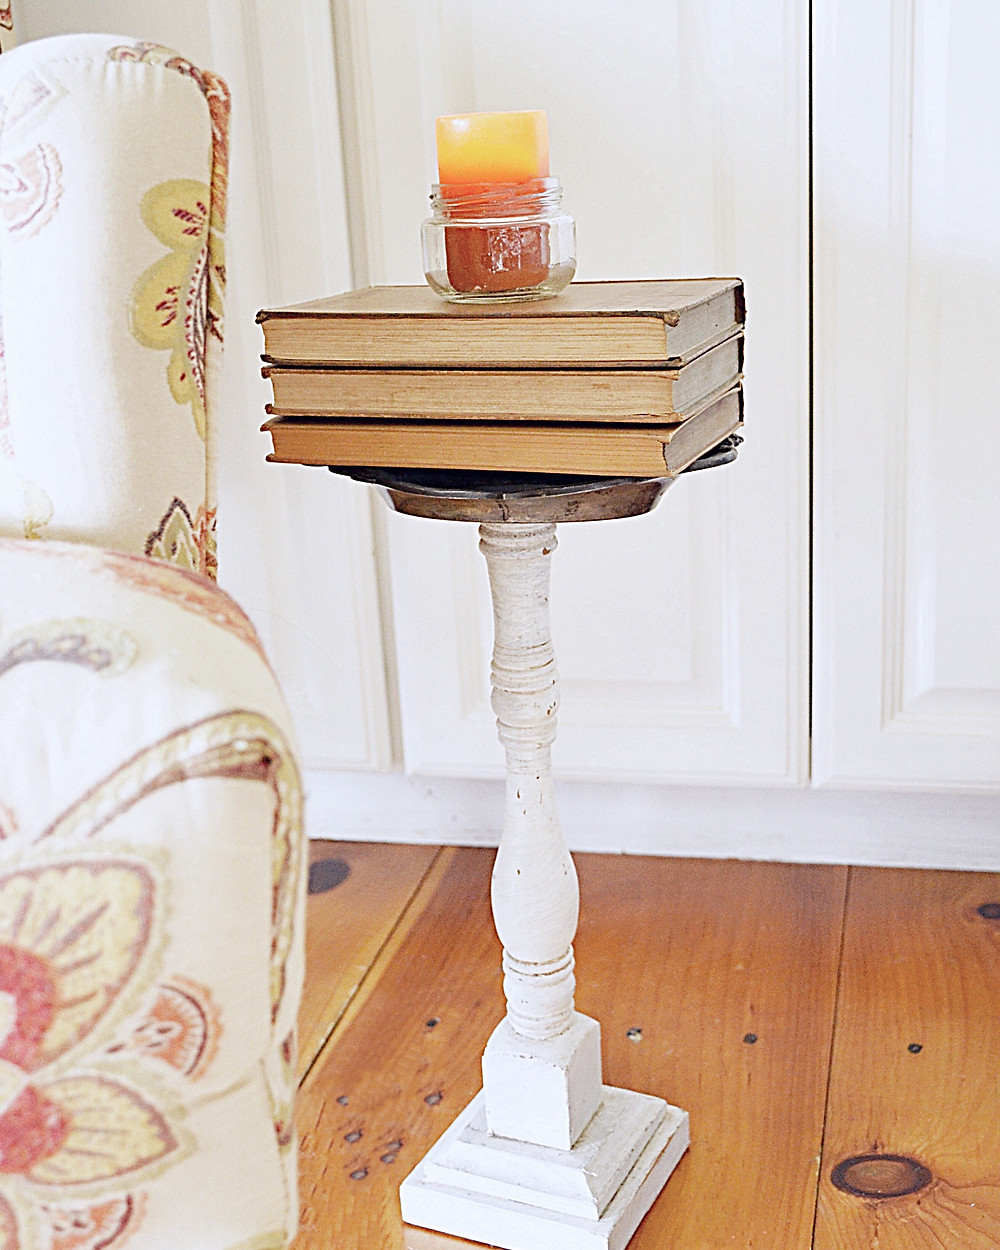 Vintage books with orange candle in jar for fall decor.